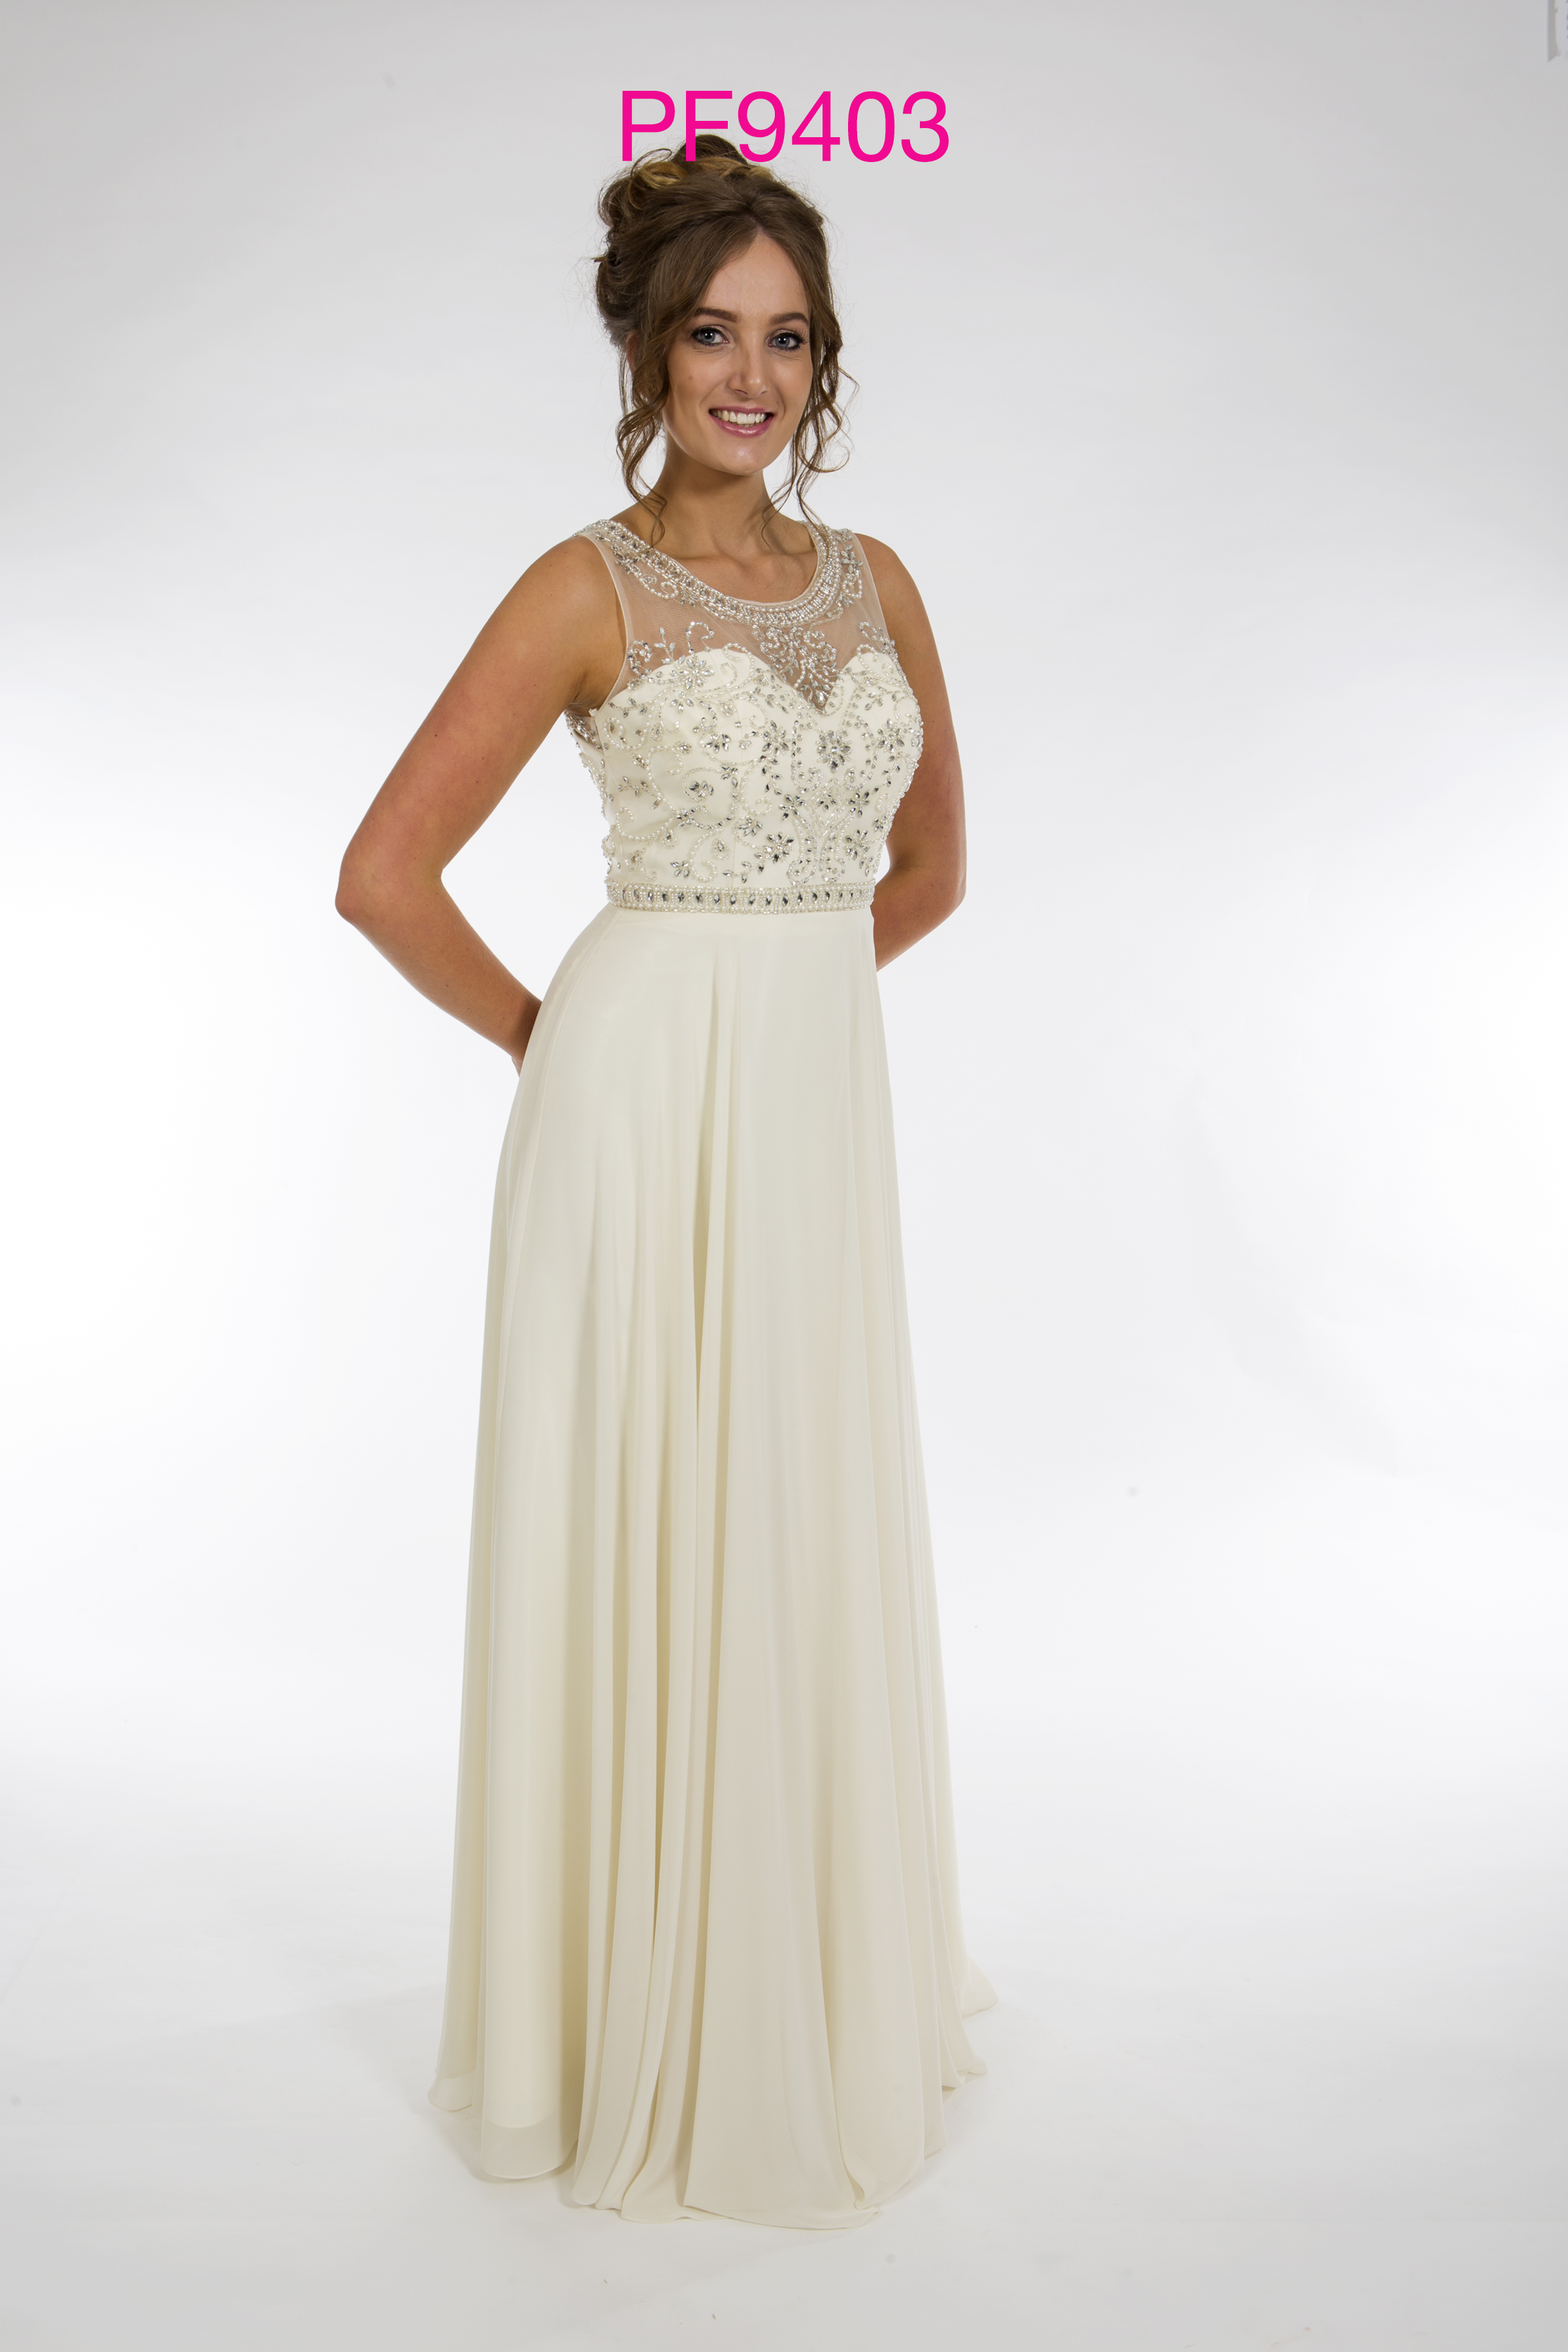 Prom Frocks PF9403 Cream Prom Dress - Prom Frocks UK Prom Dresses